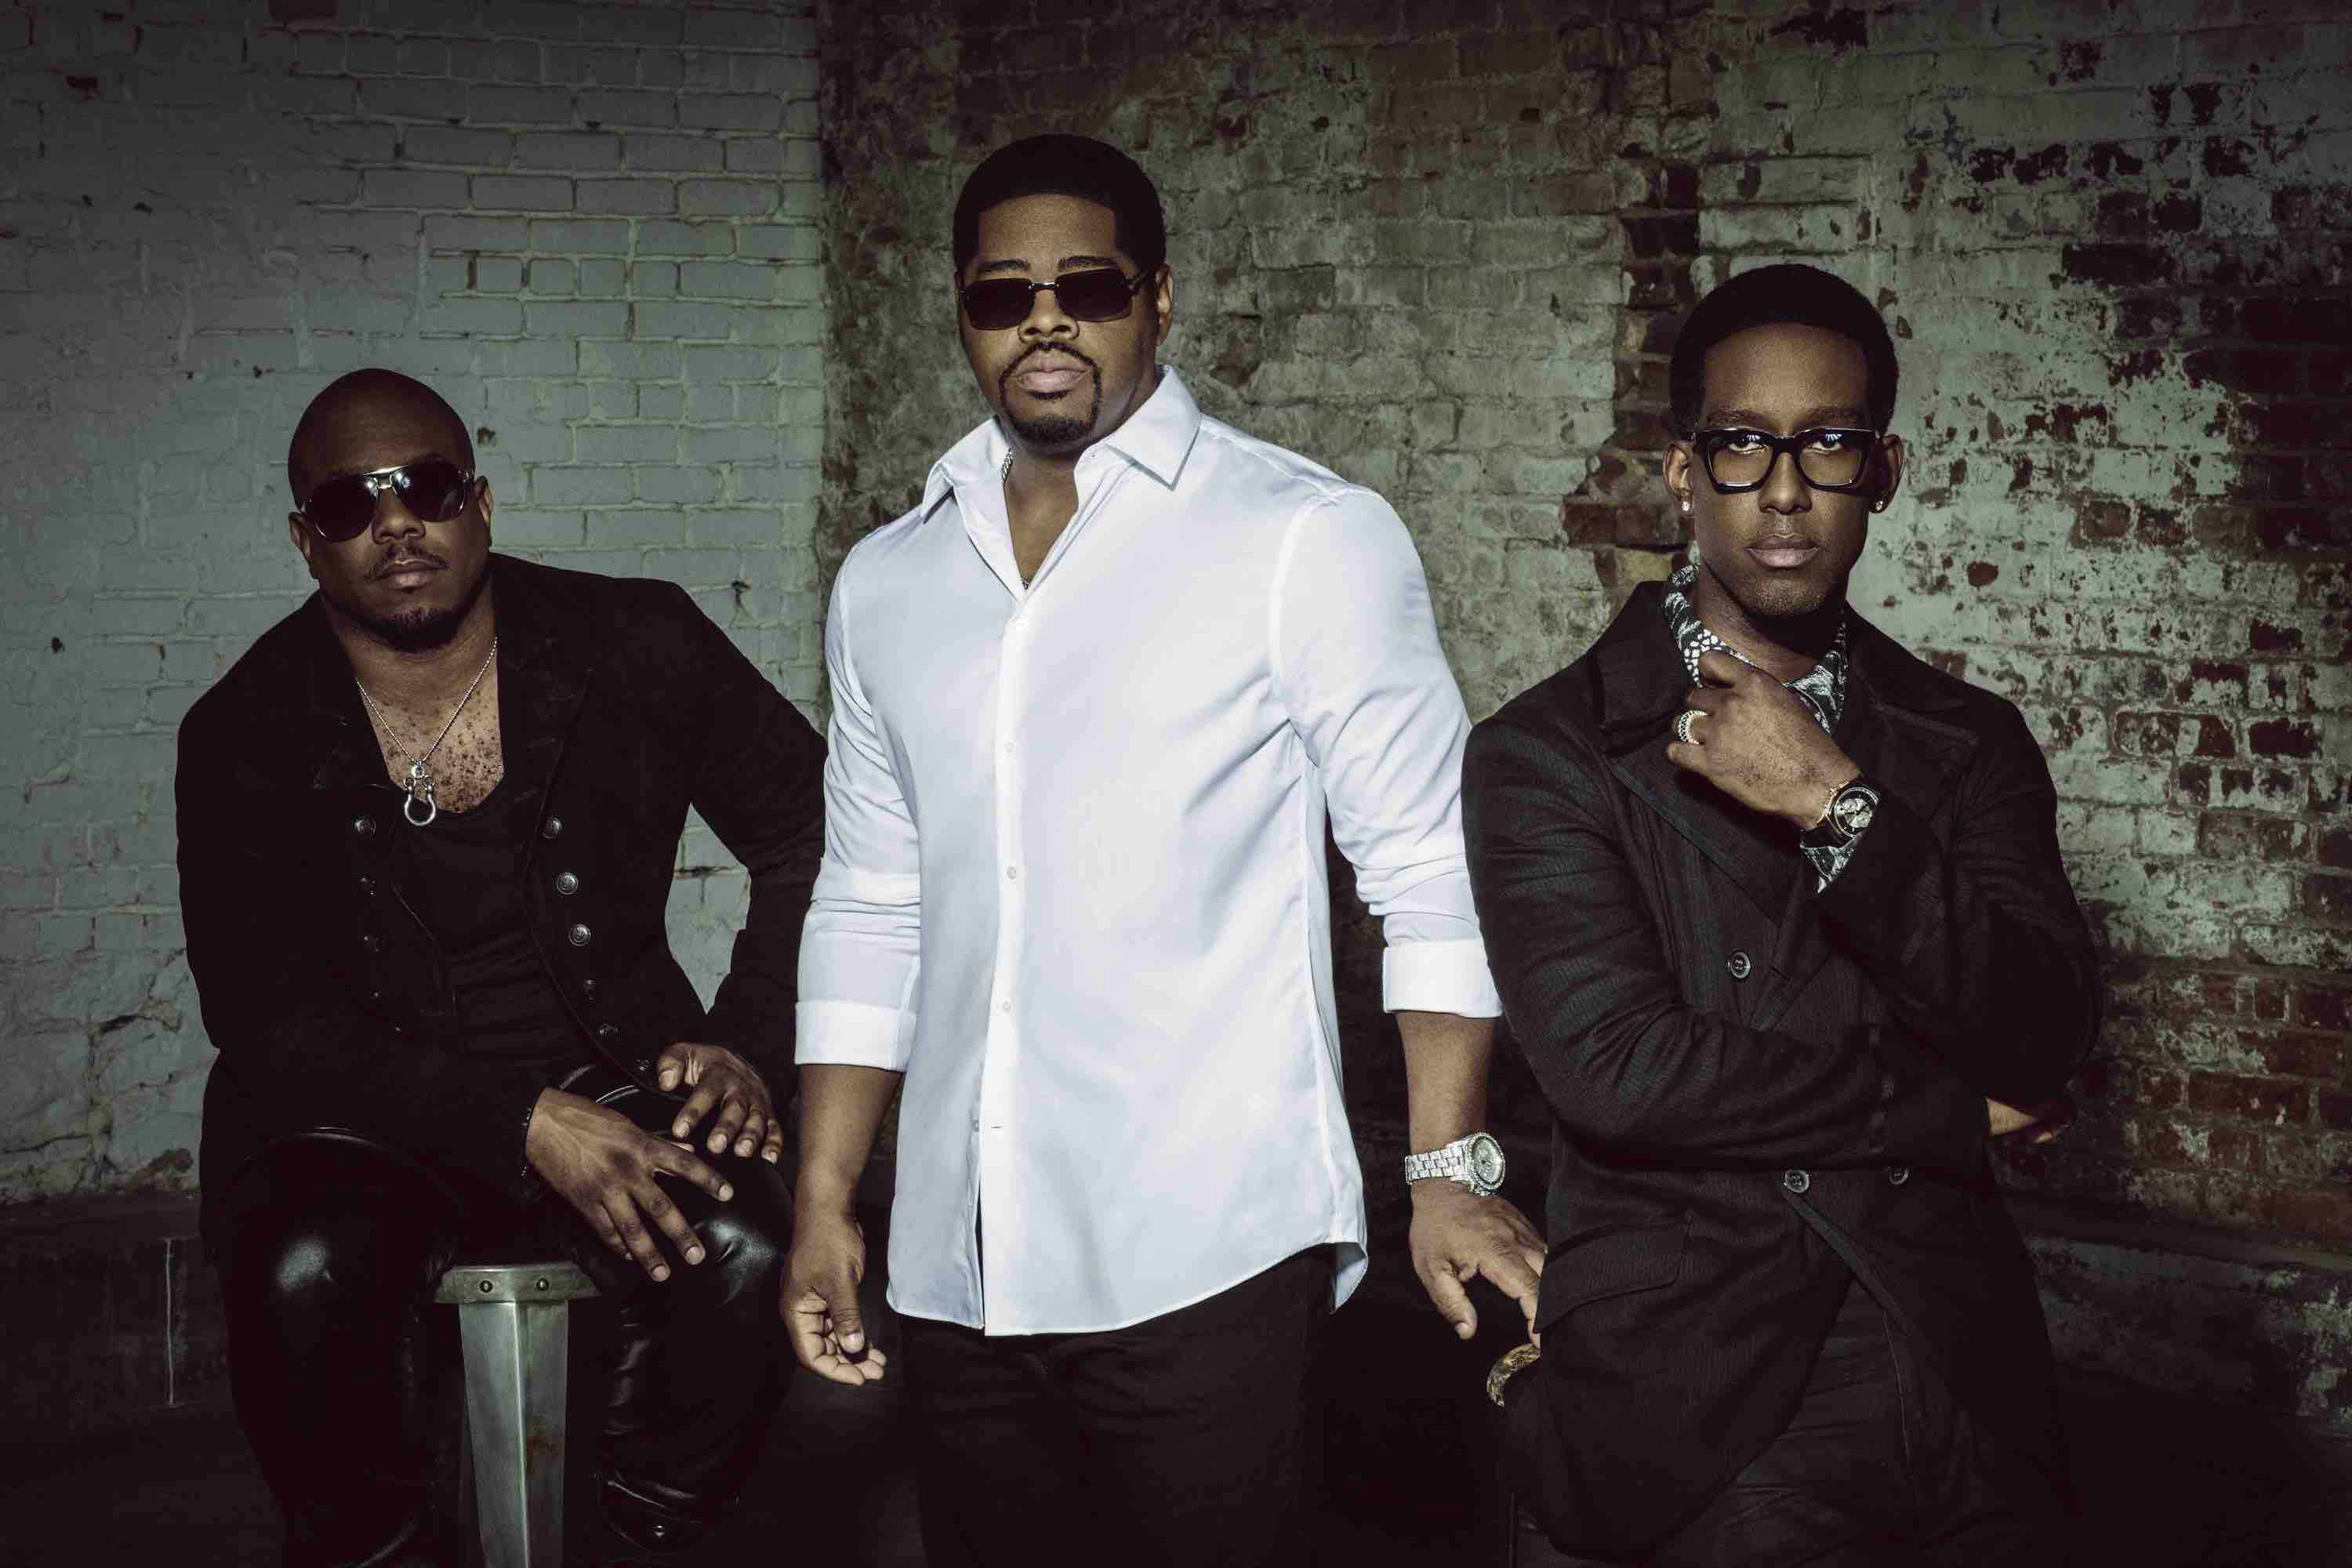 Boyz II Men UK Tour